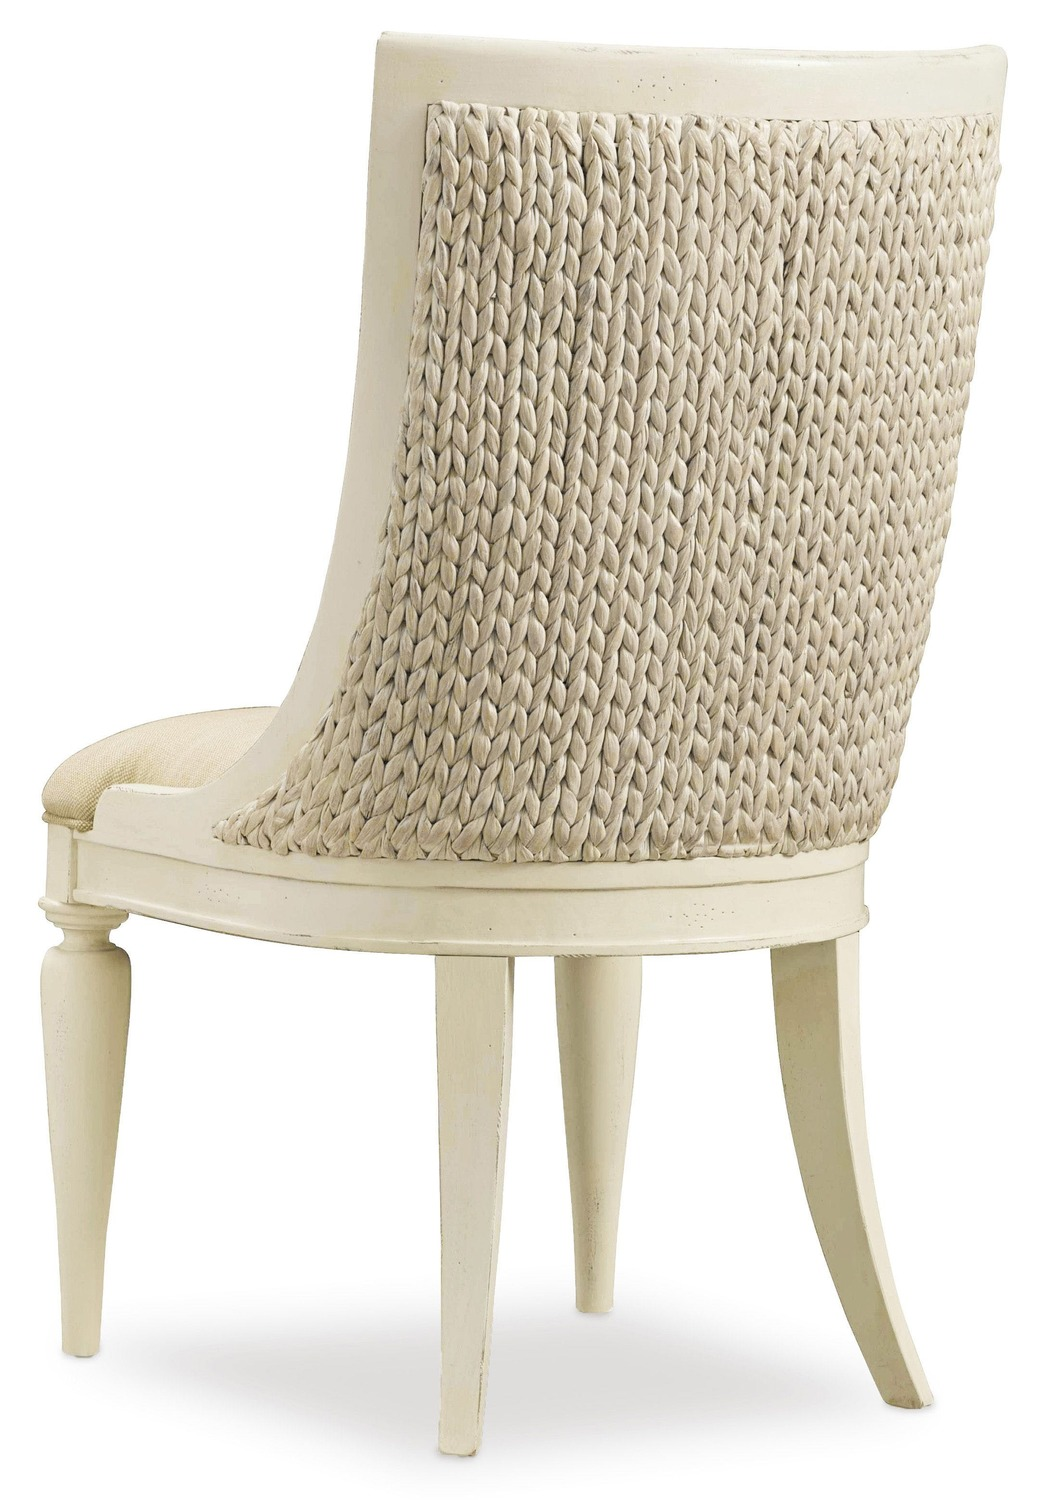 Seagrass Dining Chair Dining Room Sandcastle Seagrass Slipper Chair